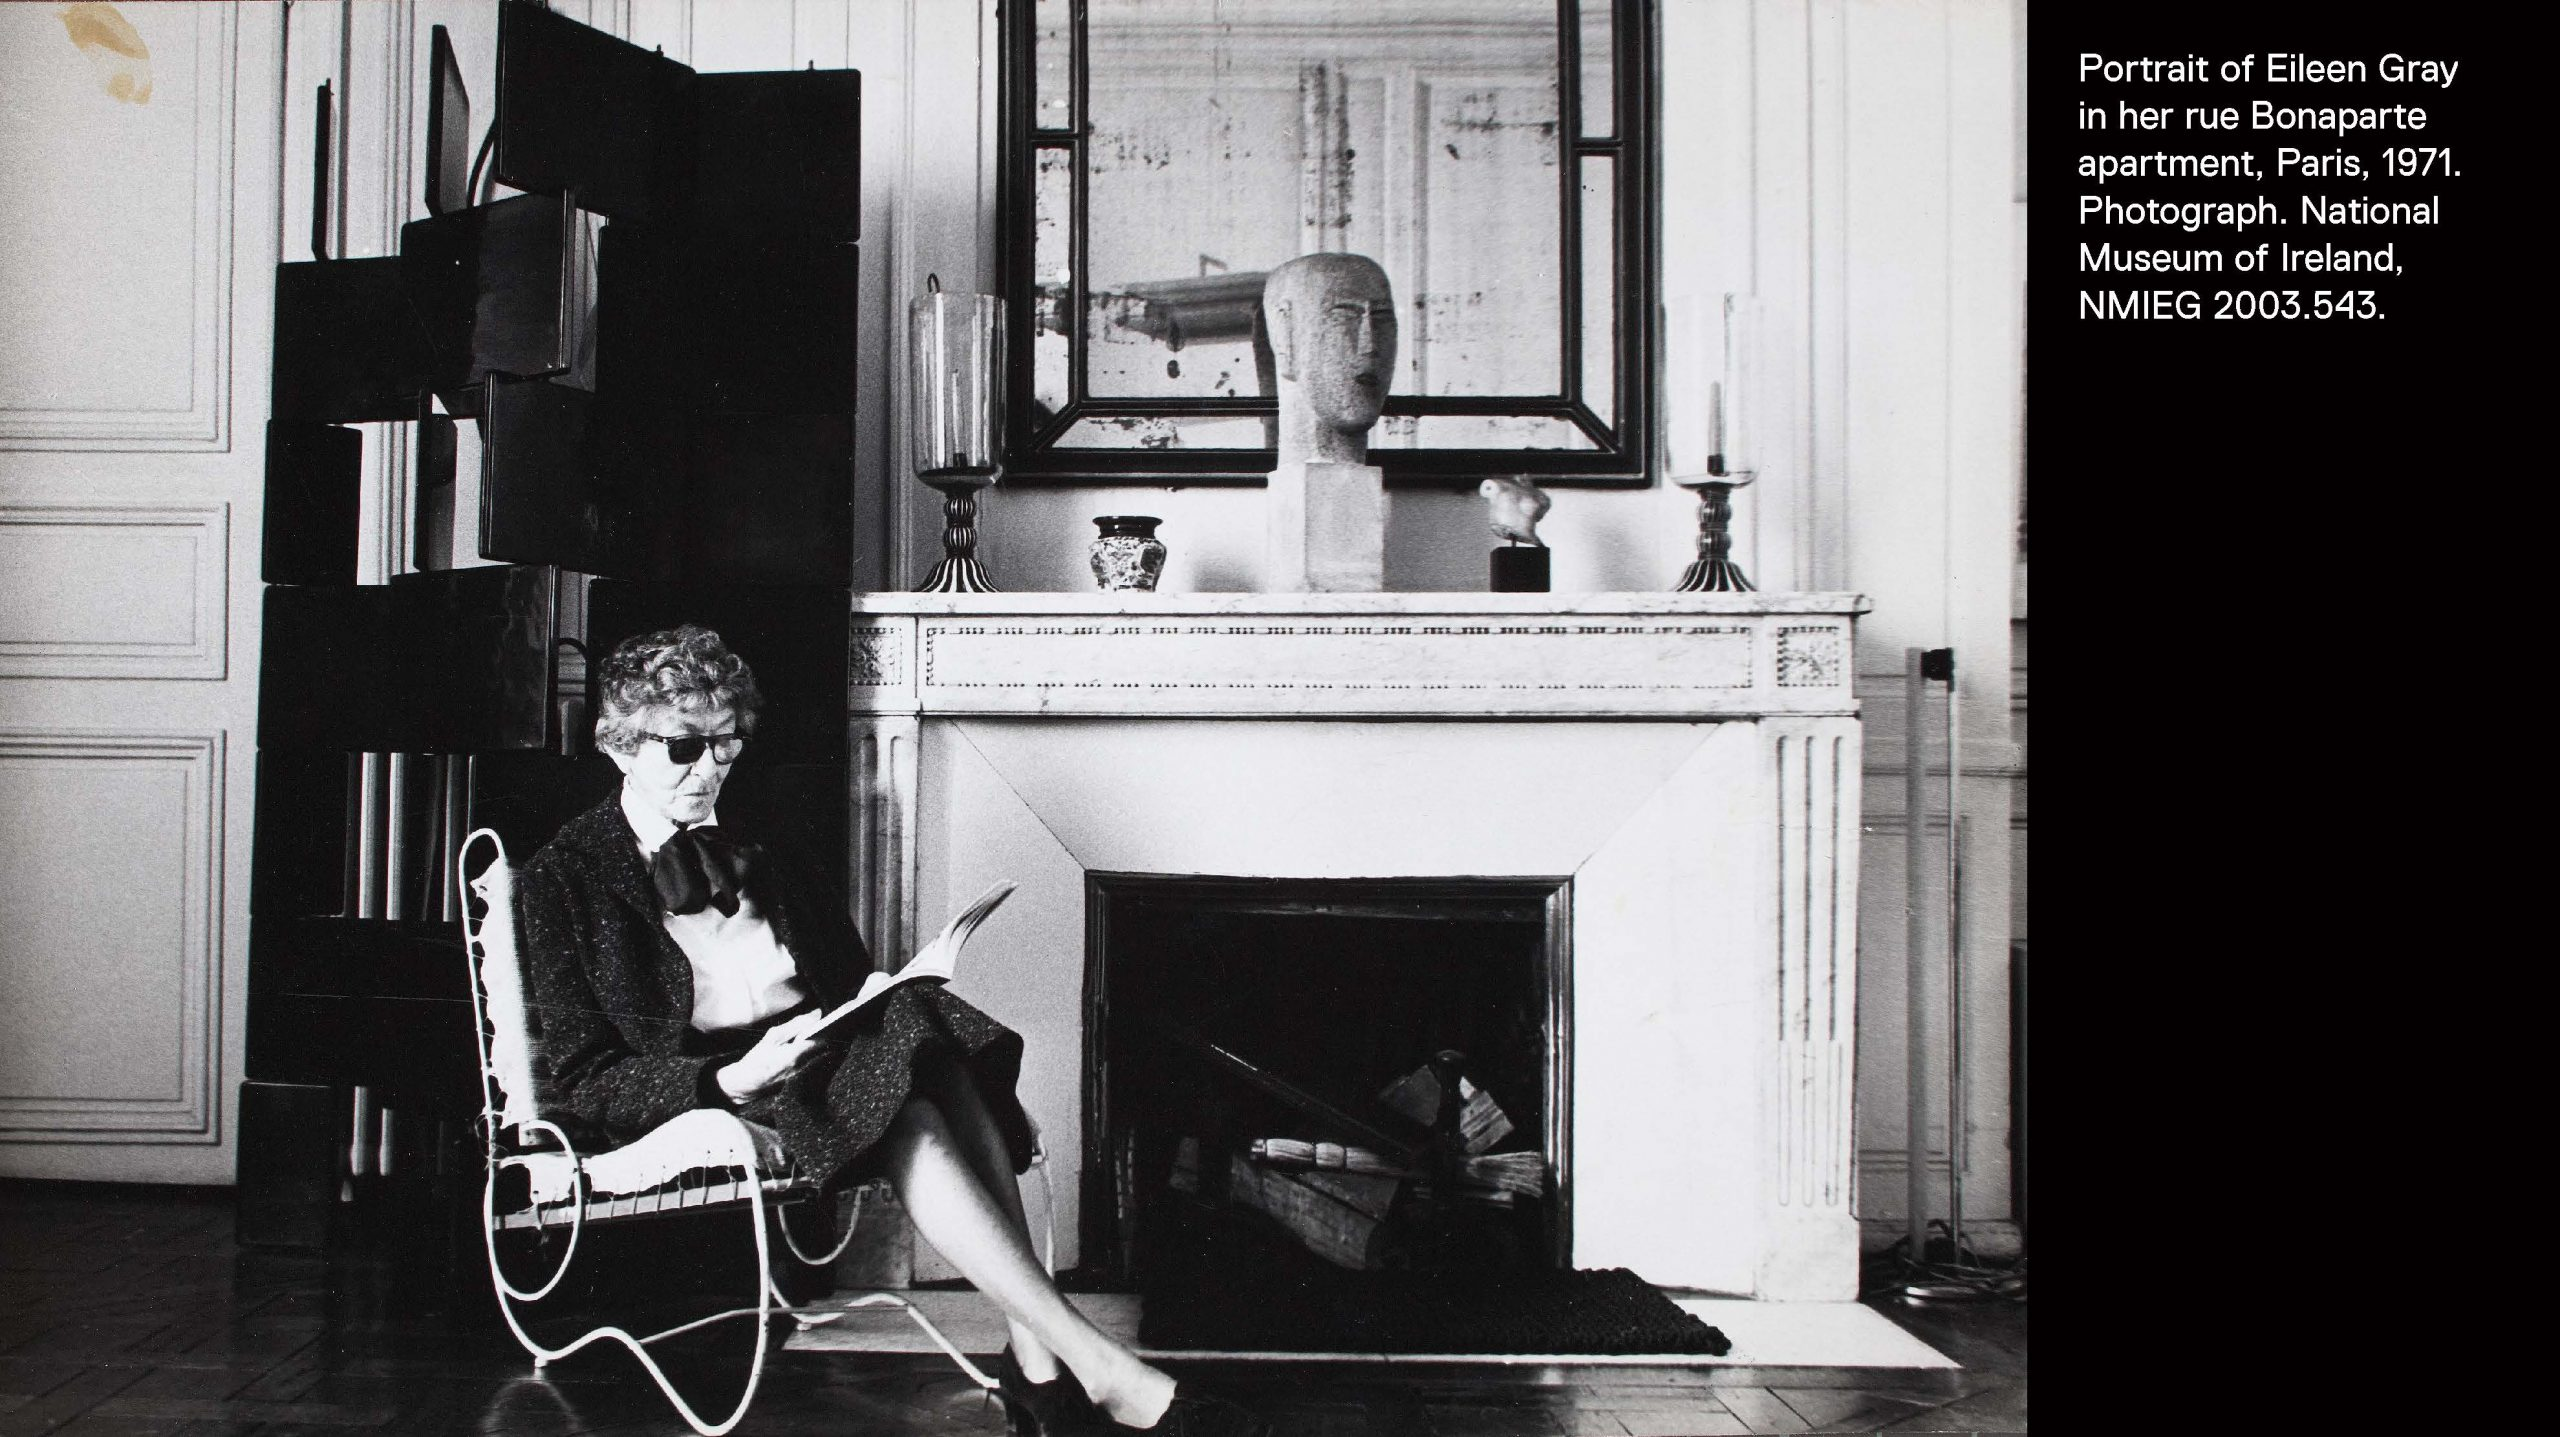 Eileen Gray sitting in a chair she designed in front of one of her lacquer block screens and a fireplace with sculptures.